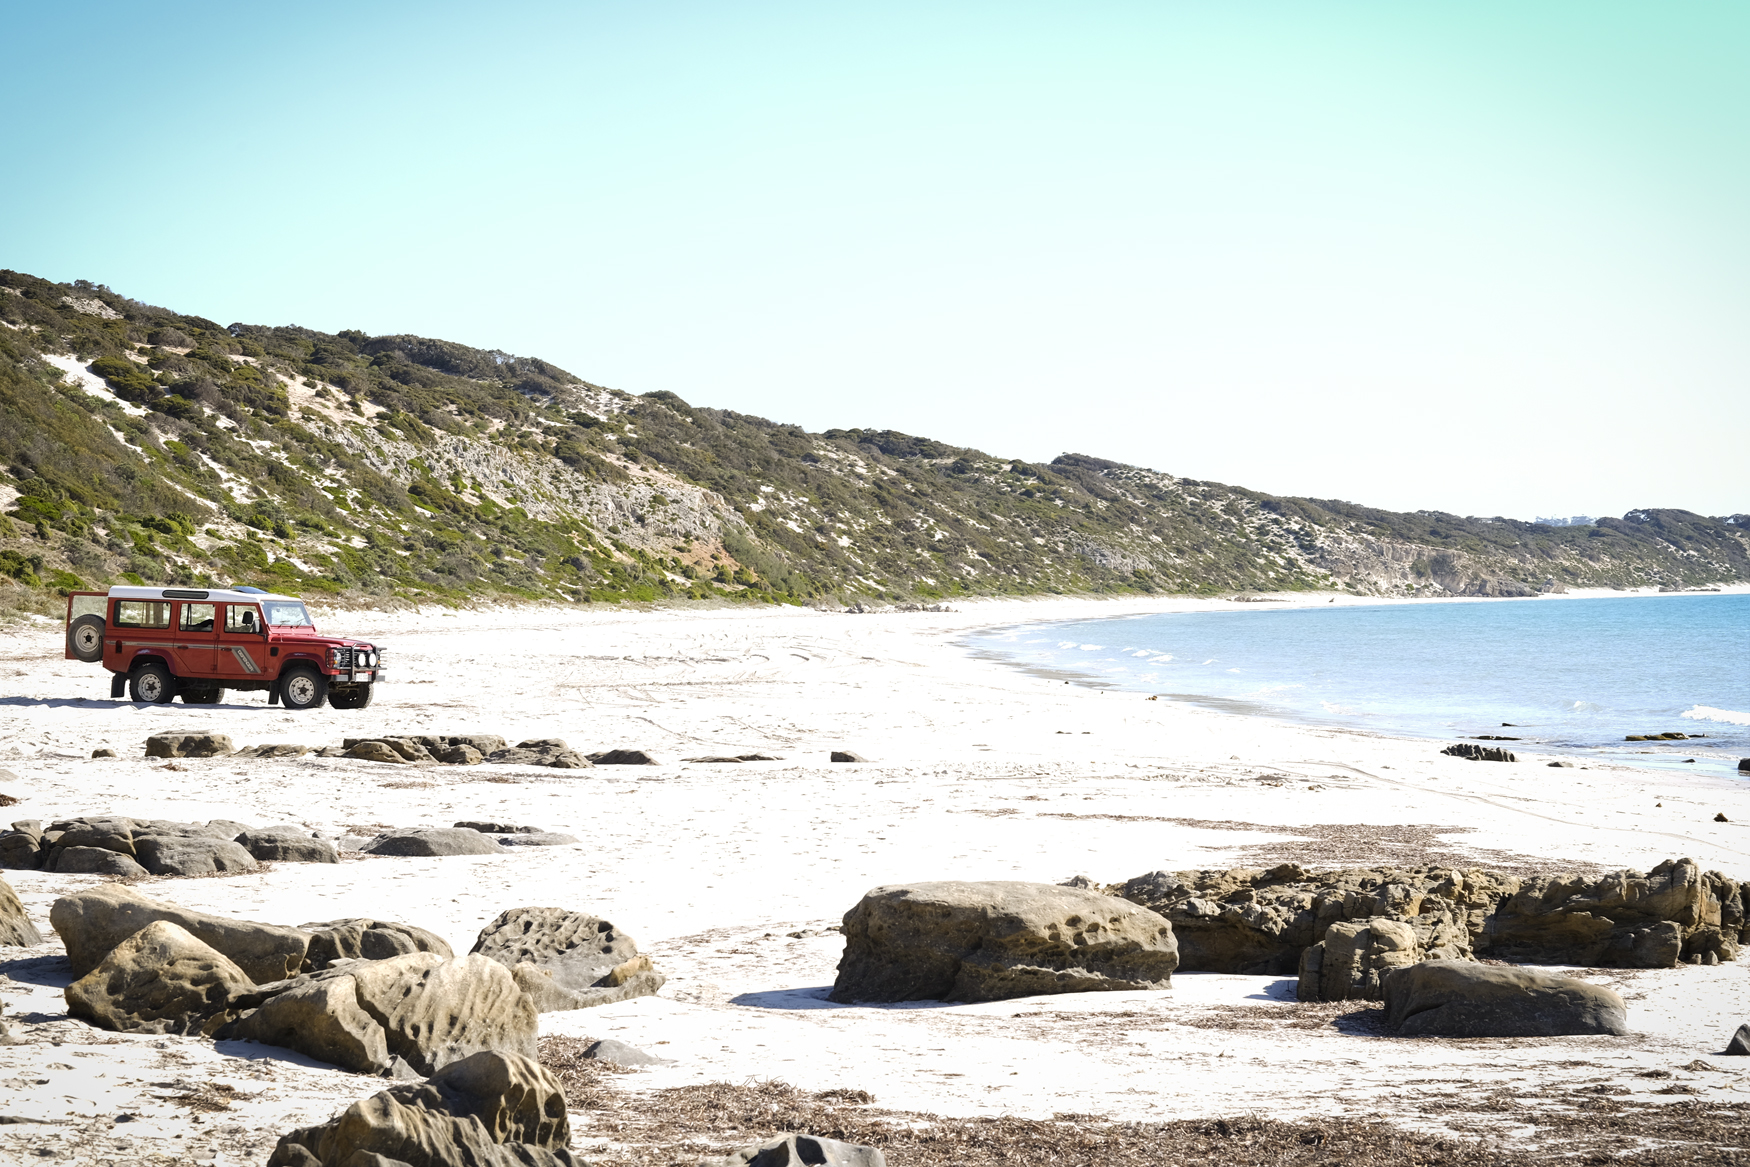 Take your vehicle all the way to the end of the bay. Four wheel drive is recommended - but not essential - if you stay out of the soft sand.